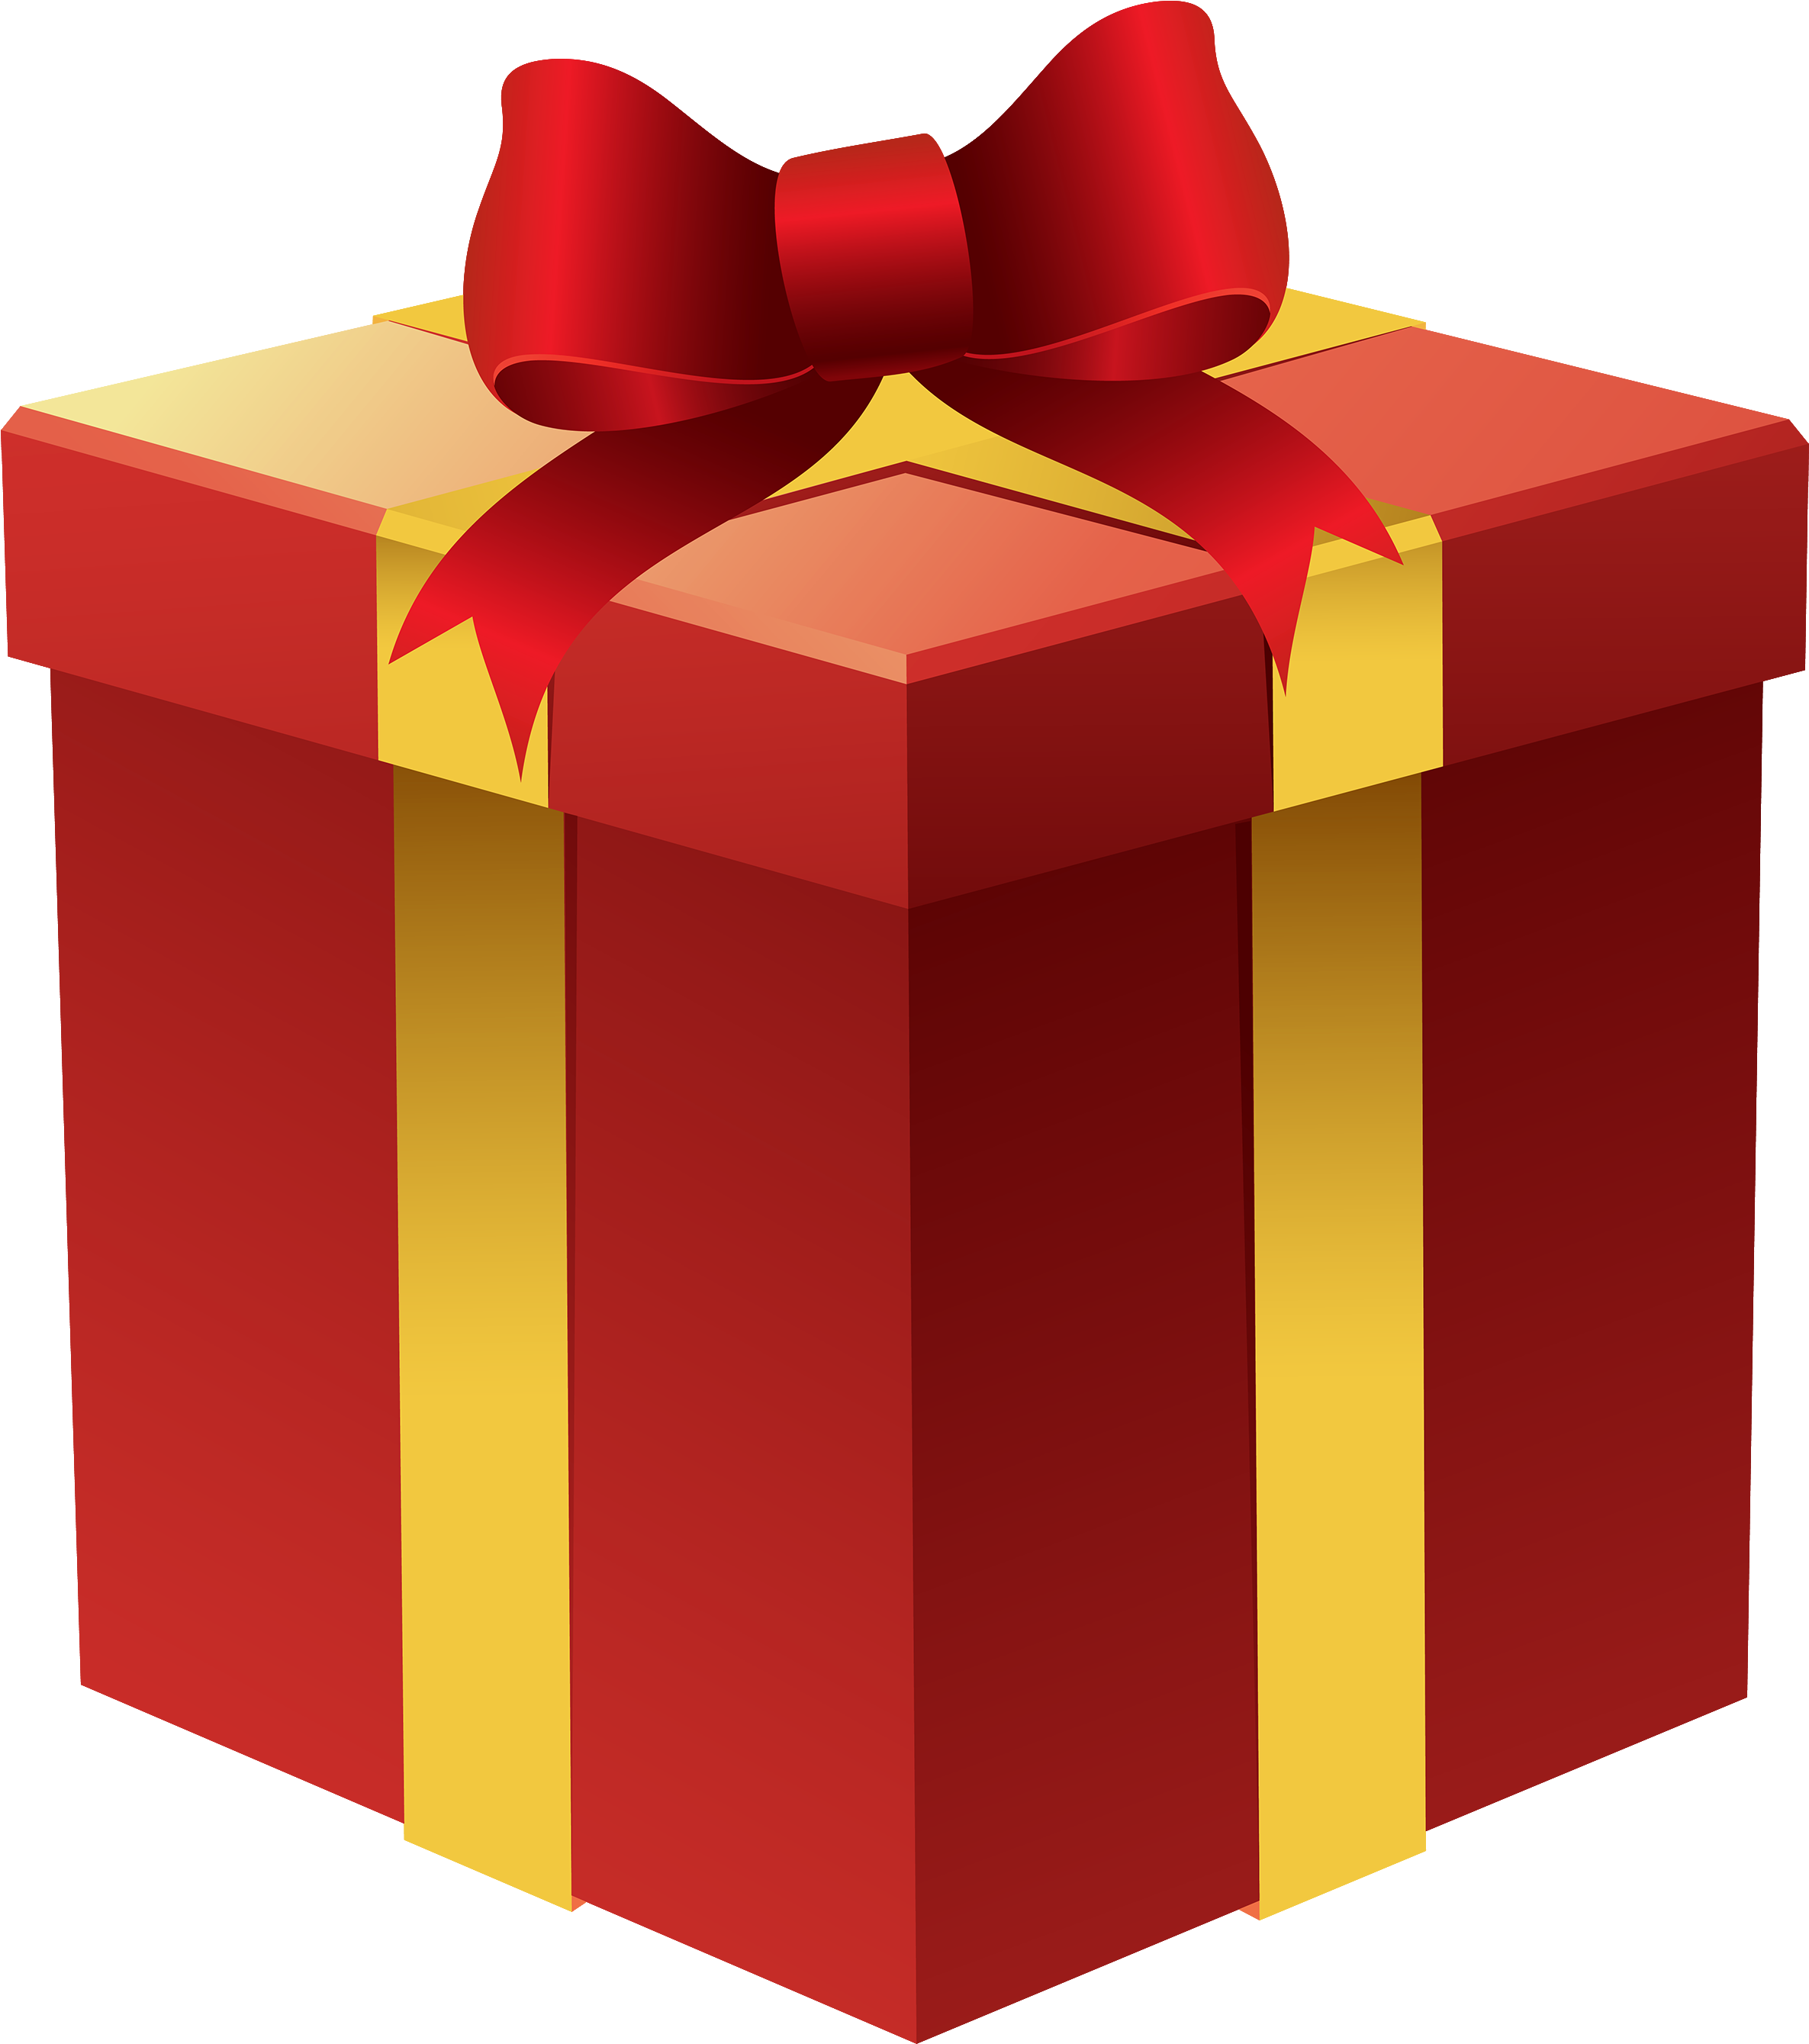 Download Gift Box In Red Png Clipart Gift Box Clipart Png Full Size Png Image Pngkit